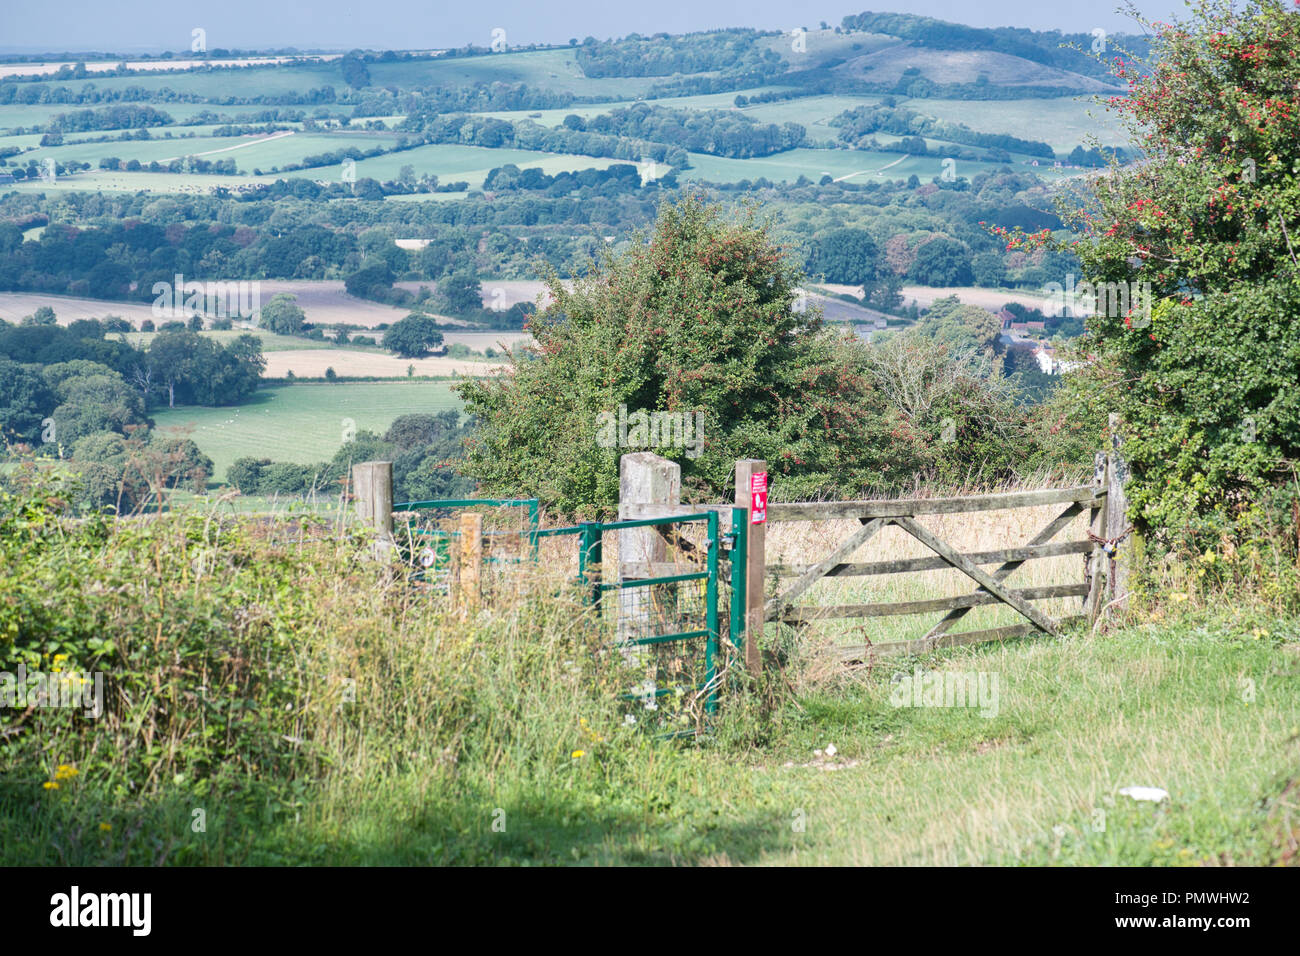 View of the Meon Valley, Hampshire from Old Winchester Hill National Nature Reserve - Stock Image